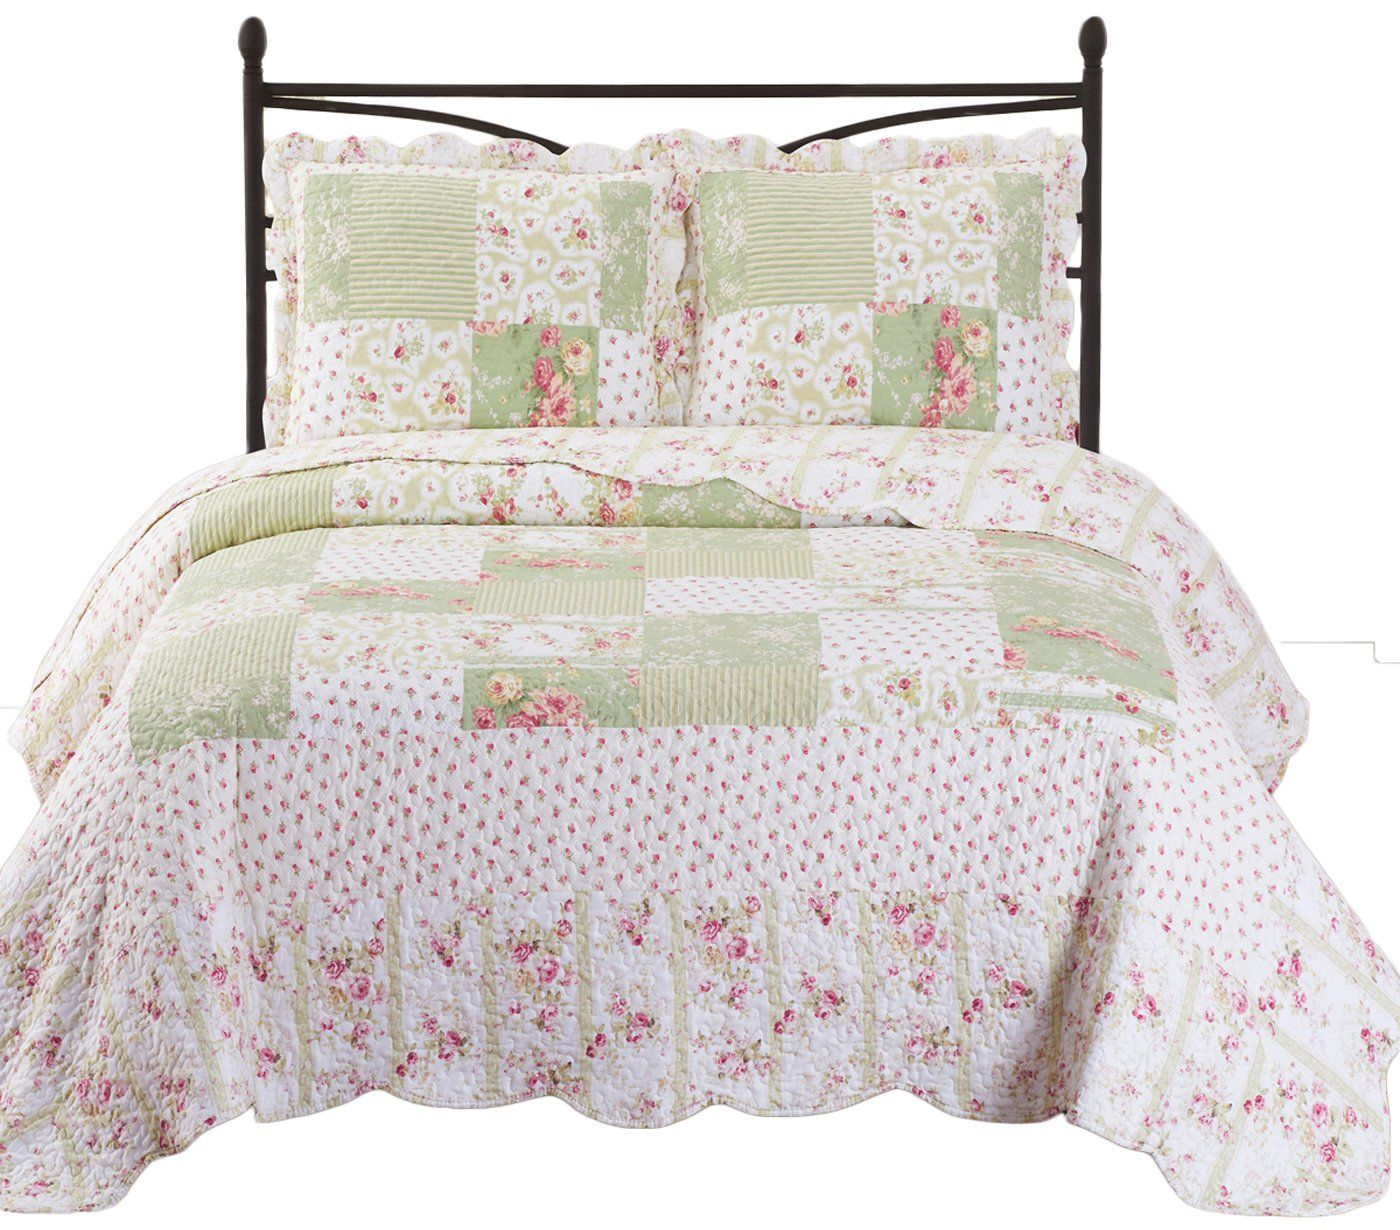 Upland King Cal King Size Oversized Quilt 3pc Set 110x96 Luxury Microfiber Printed Coverlet By Royal Tradition For Mo Quilt Sets Quilt Bedding Bedding Sets